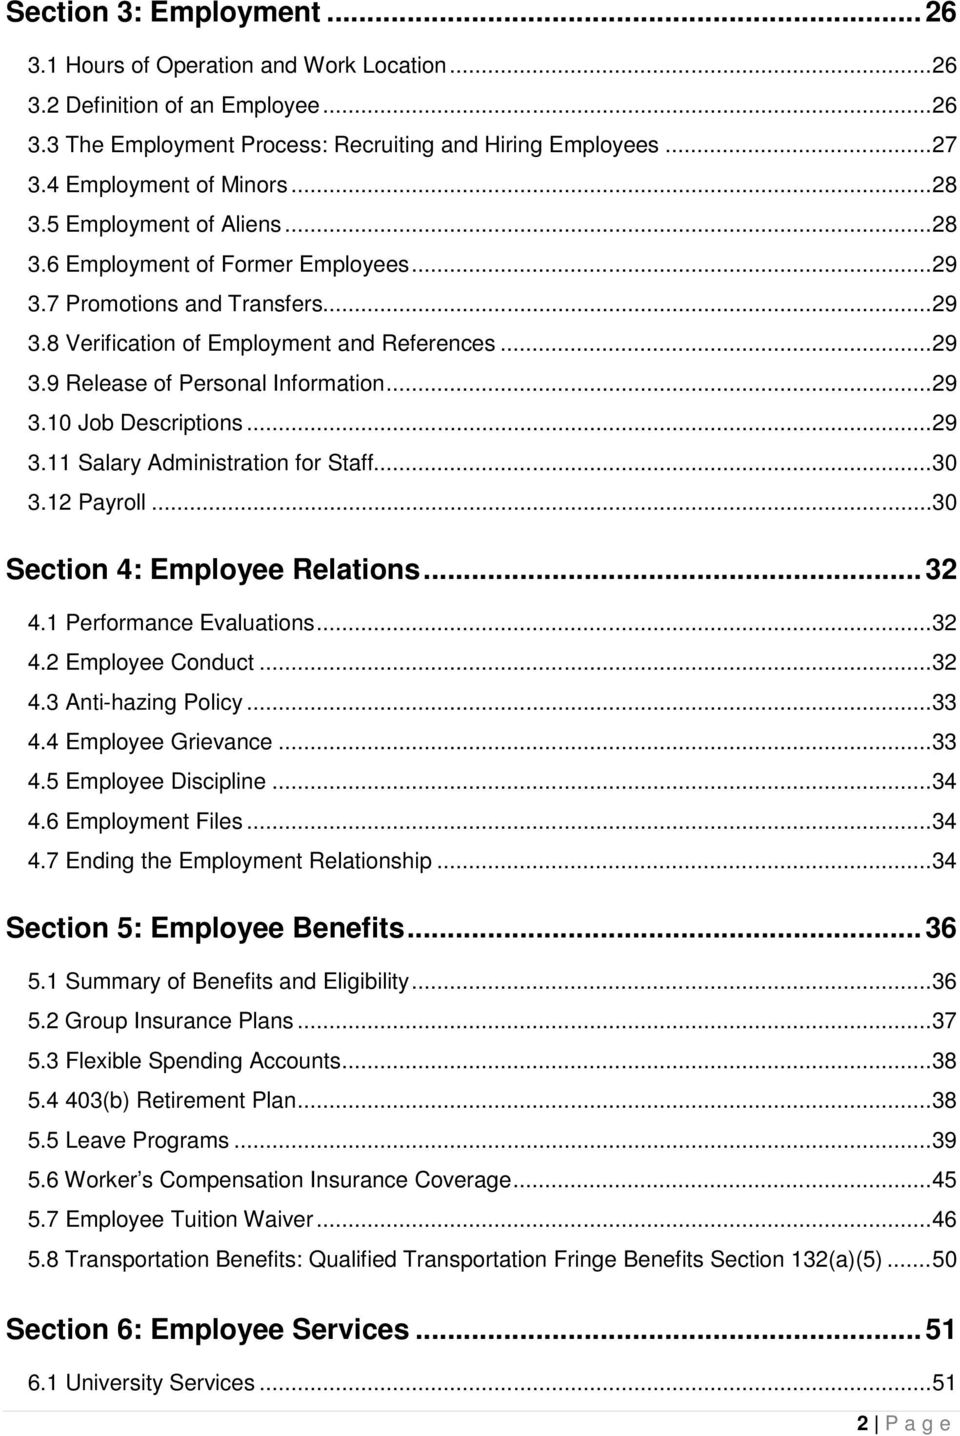 .. 29 3.10 Job Descriptions... 29 3.11 Salary Administration for Staff... 30 3.12 Payroll... 30 Section 4: Employee Relations... 32 4.1 Performance Evaluations... 32 4.2 Employee Conduct... 32 4.3 Anti-hazing Policy.